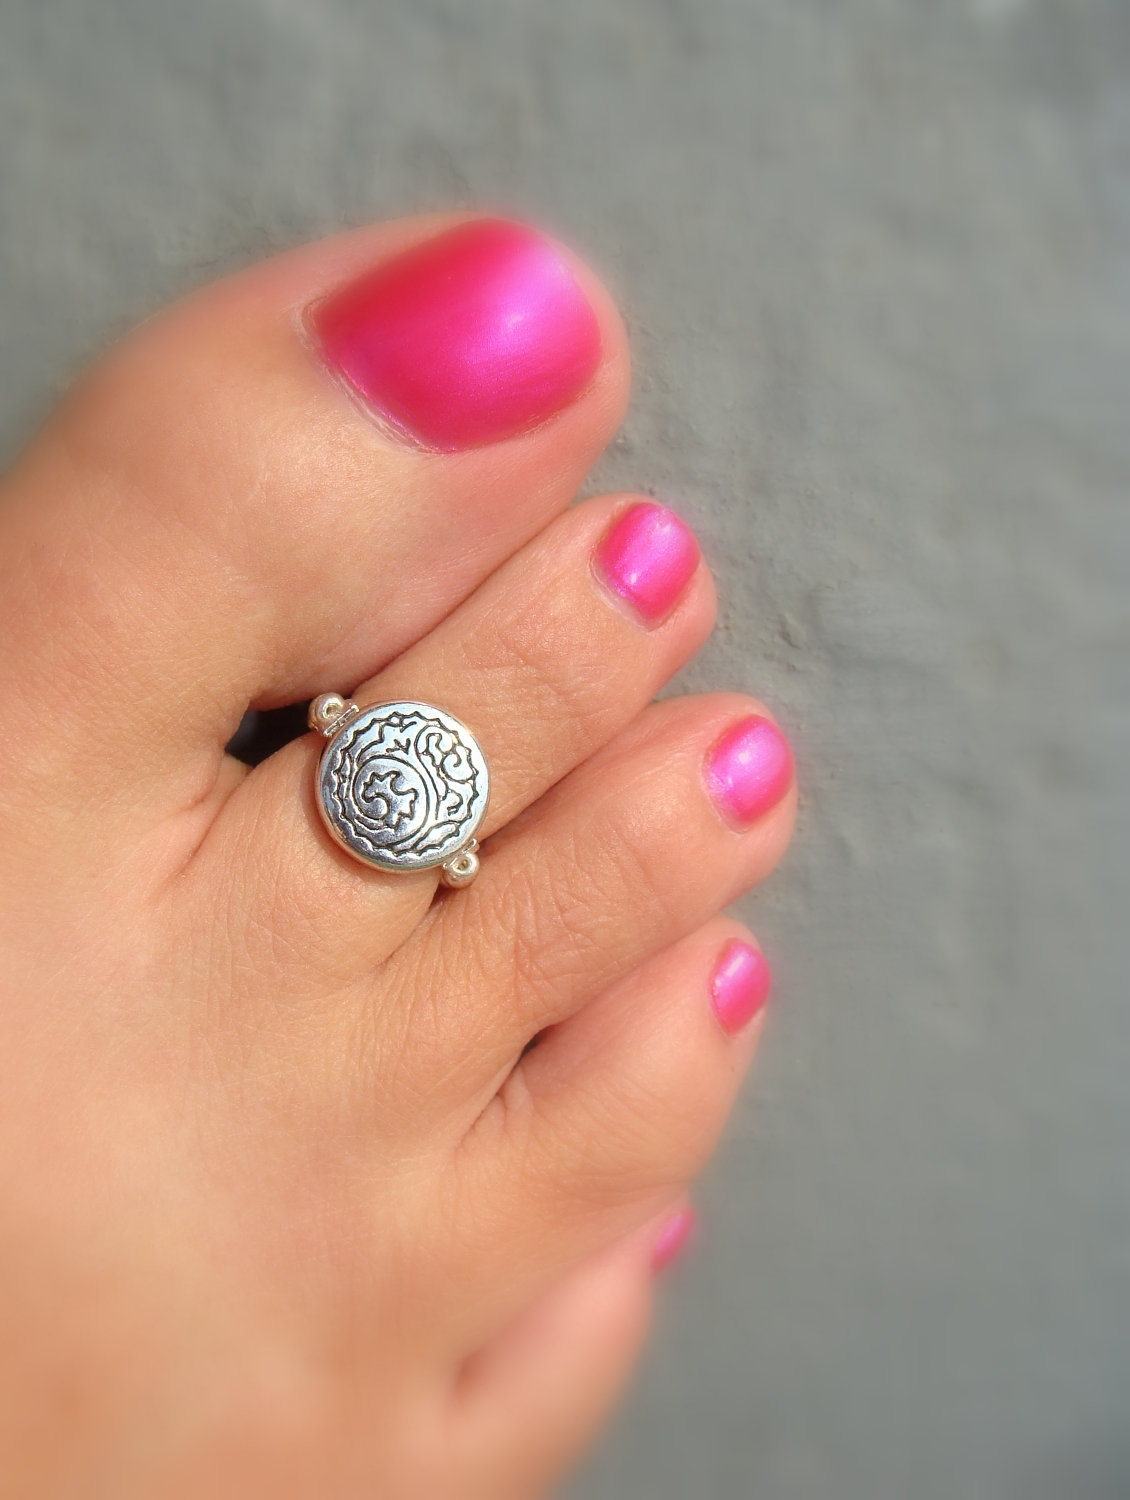 Toe Ring – Silver Wind Wave Coin Stretch Bead Toe Ring | Toe Rings Within Latest Toe Rings With Stones (View 15 of 15)